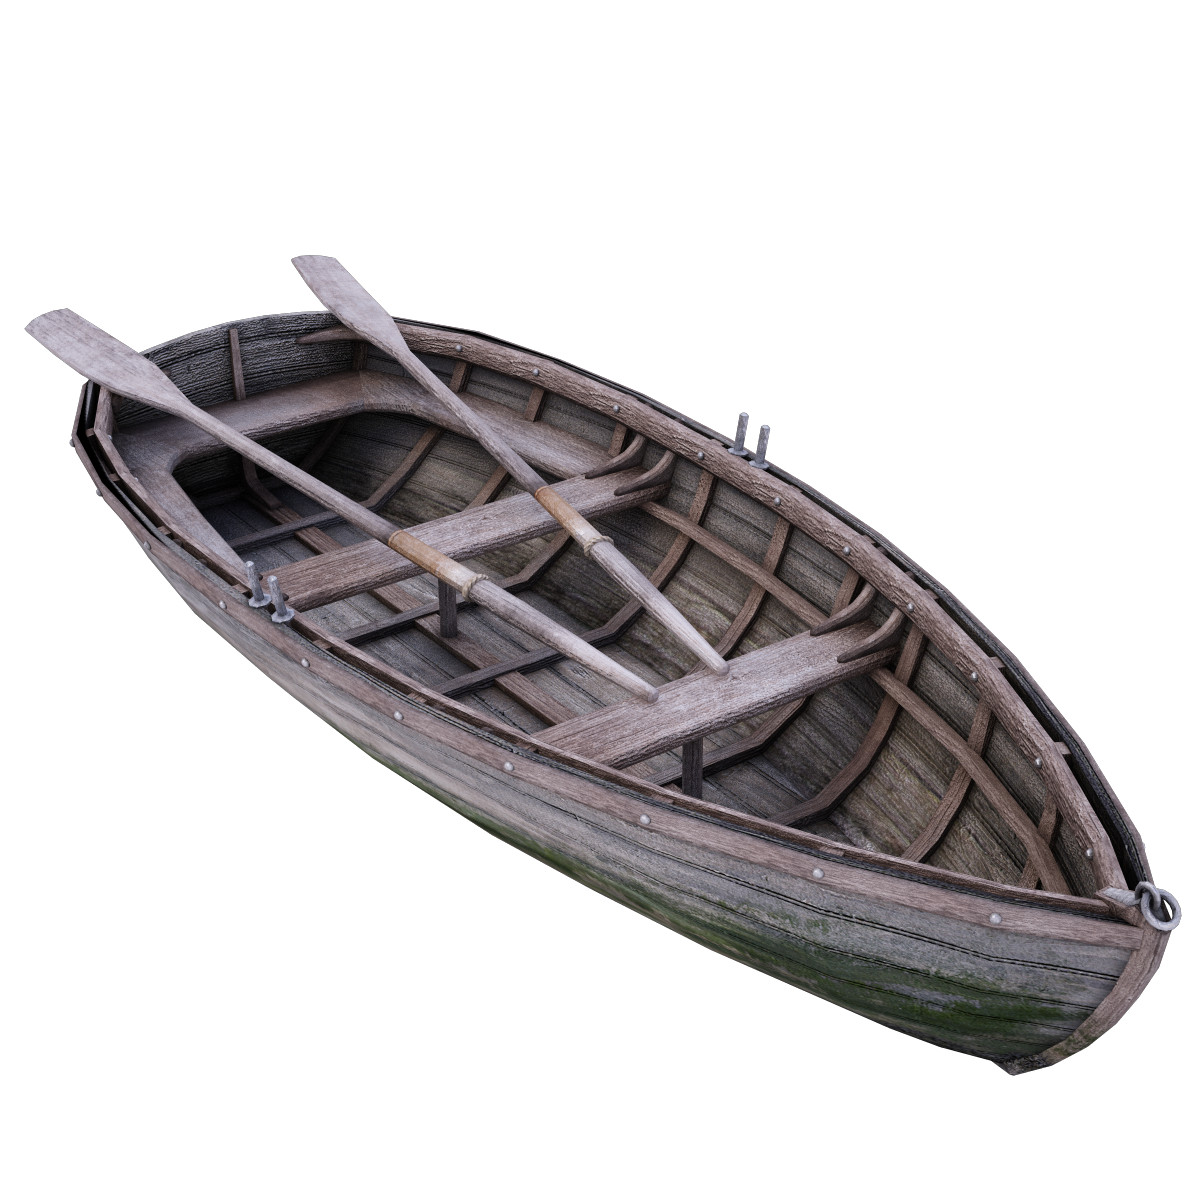 Picture Download Boat Png Transparent Background Free Download 36608 Freeiconspng